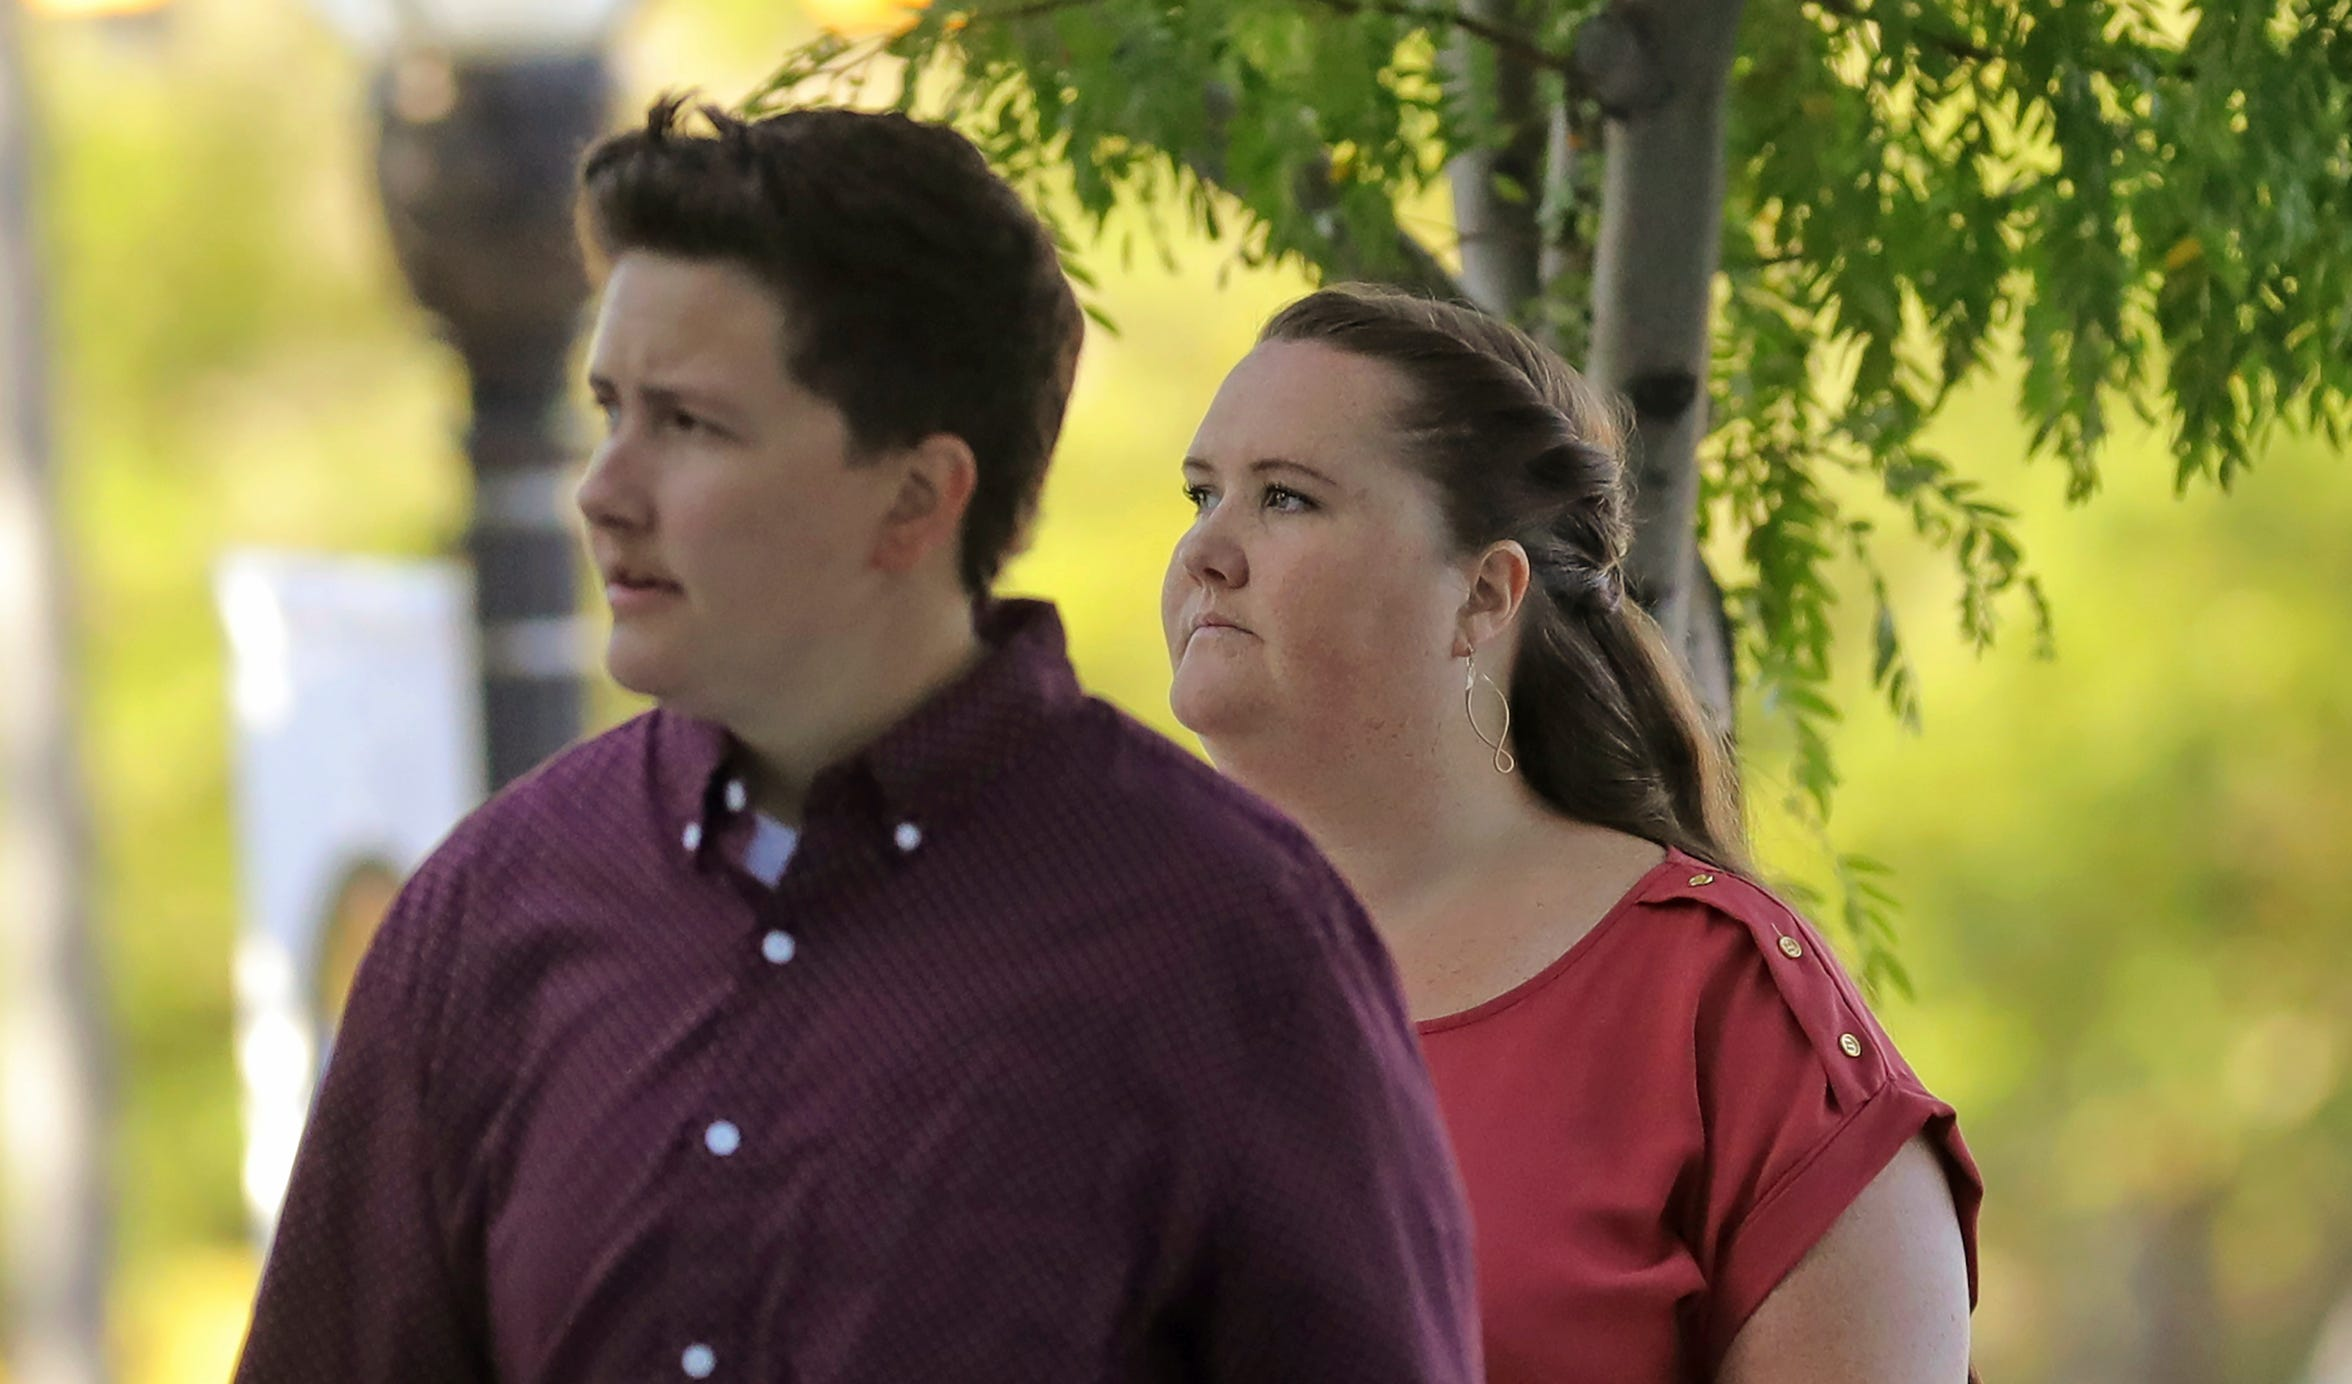 In this Aug. 14, 2019, photo, Alexandrya Tonge, left, and Katherine Bustin, rear, arrive at the federal courthouse in Salt Lake City. Alexandrya Tonge and Katherine Bustin pleaded guilty to divvying up and packaging tens of thousands of pills, then shipping them to customers through the U.S. mail for Aaron Shamo as he built a multimillion-dollar fentanyl trafficking empire.